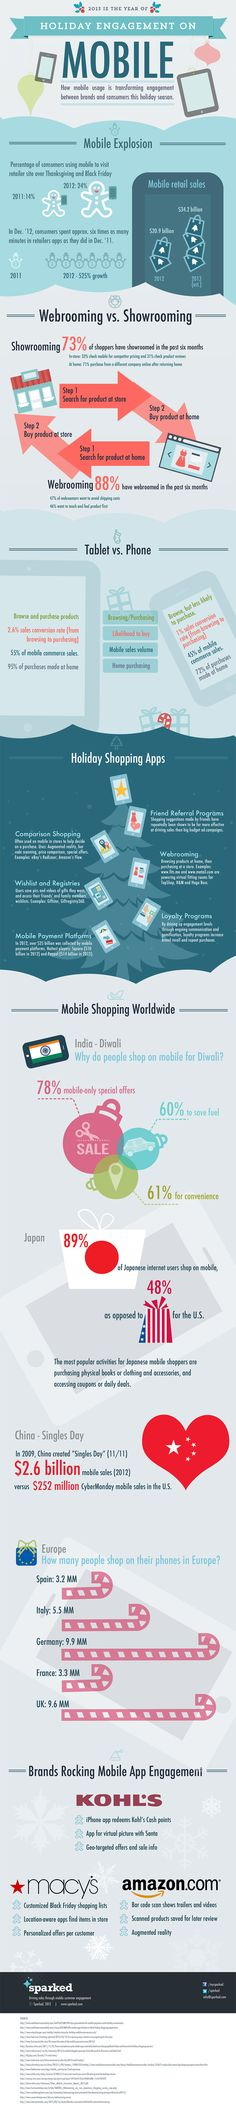 Mobile Commerce Has Completely Exploded Holiday engagement (Infographic) Mobile Advertising, Mobile Marketing, Internet Marketing, Online Marketing, Social Media Digital Marketing, Social Media Tips, Smartphone, Holiday Market, Mobile Shop